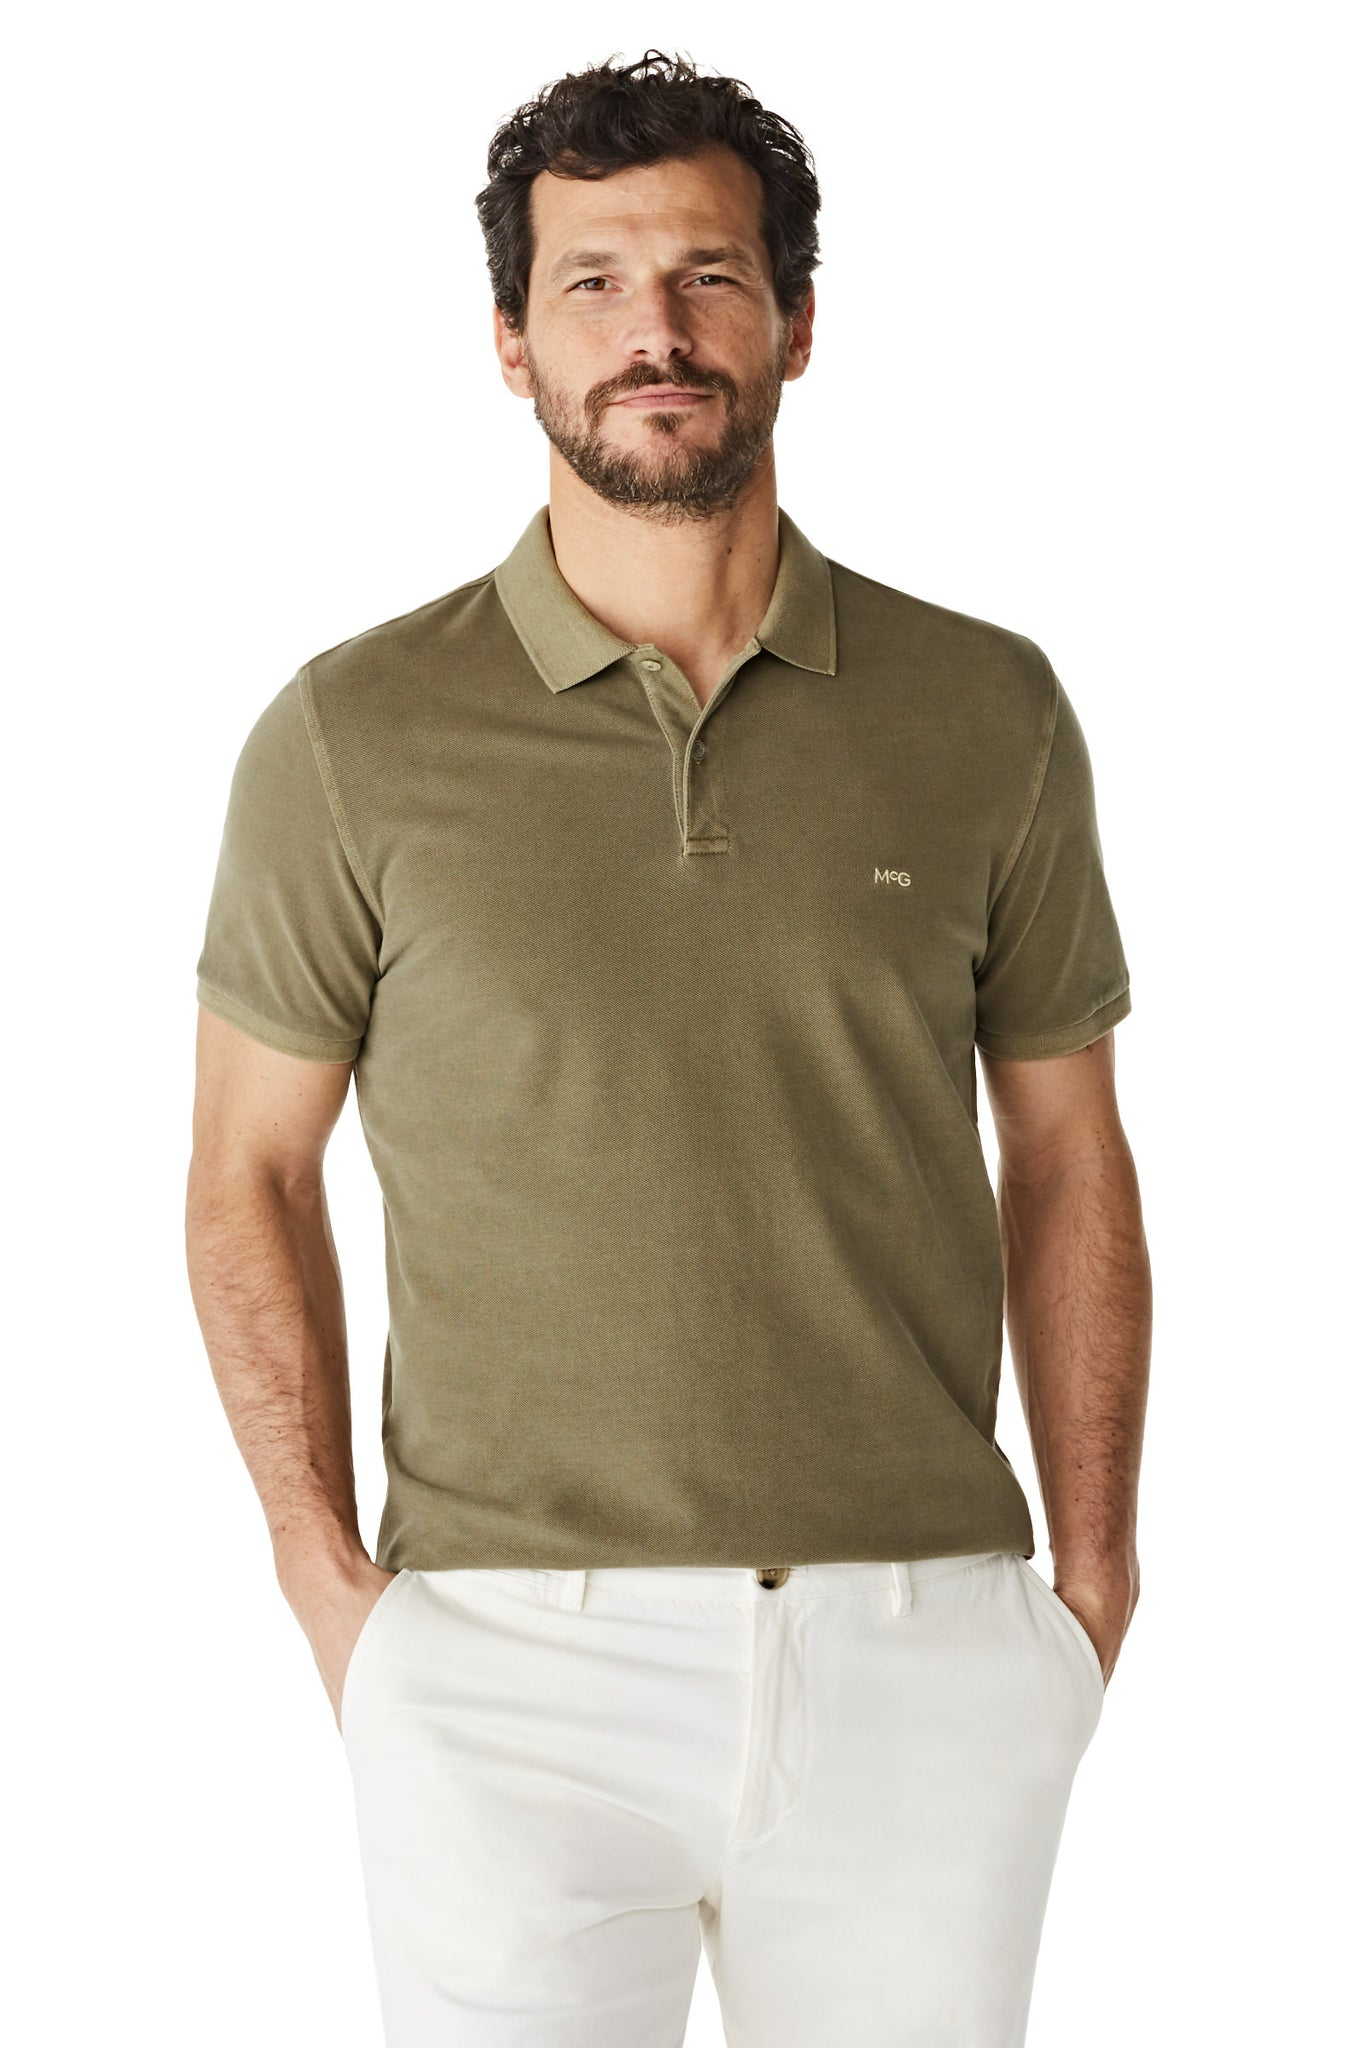 McG Regular fit pique polo in soft cotton